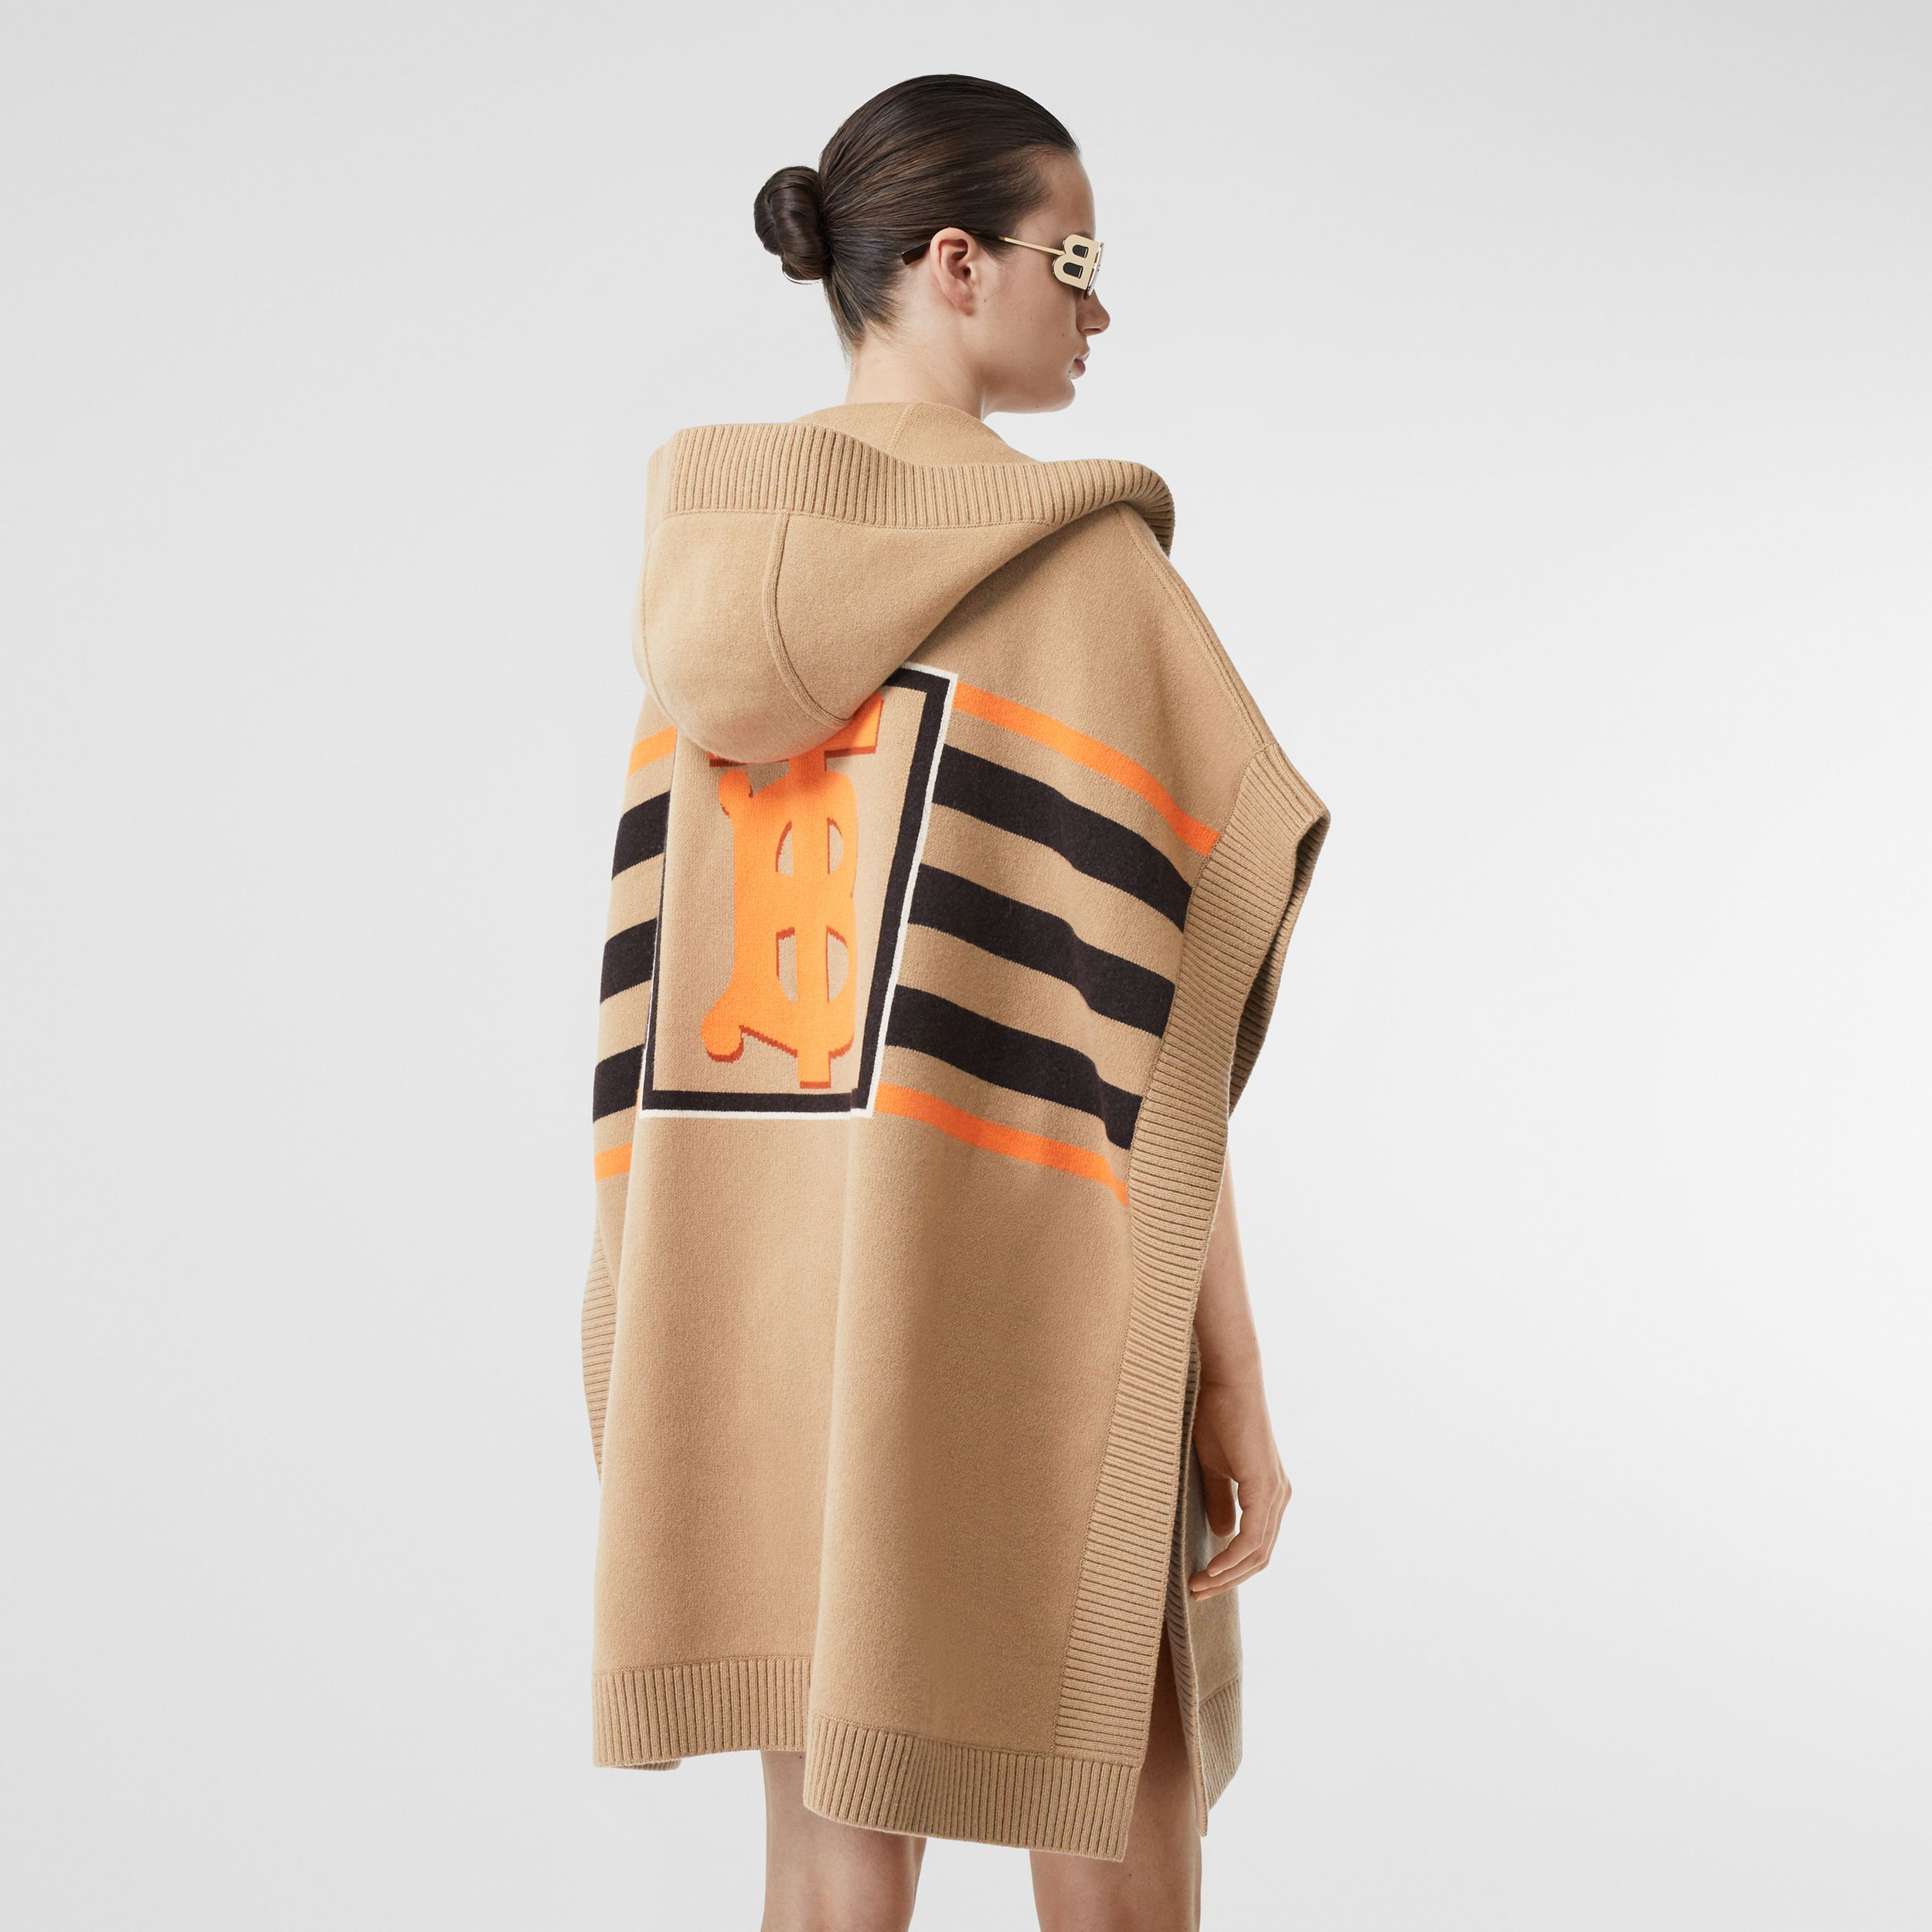 Monogram Motif Intarsia Wool Cashmere Blend Cape in Archive Beige - Women | Burberry - 3